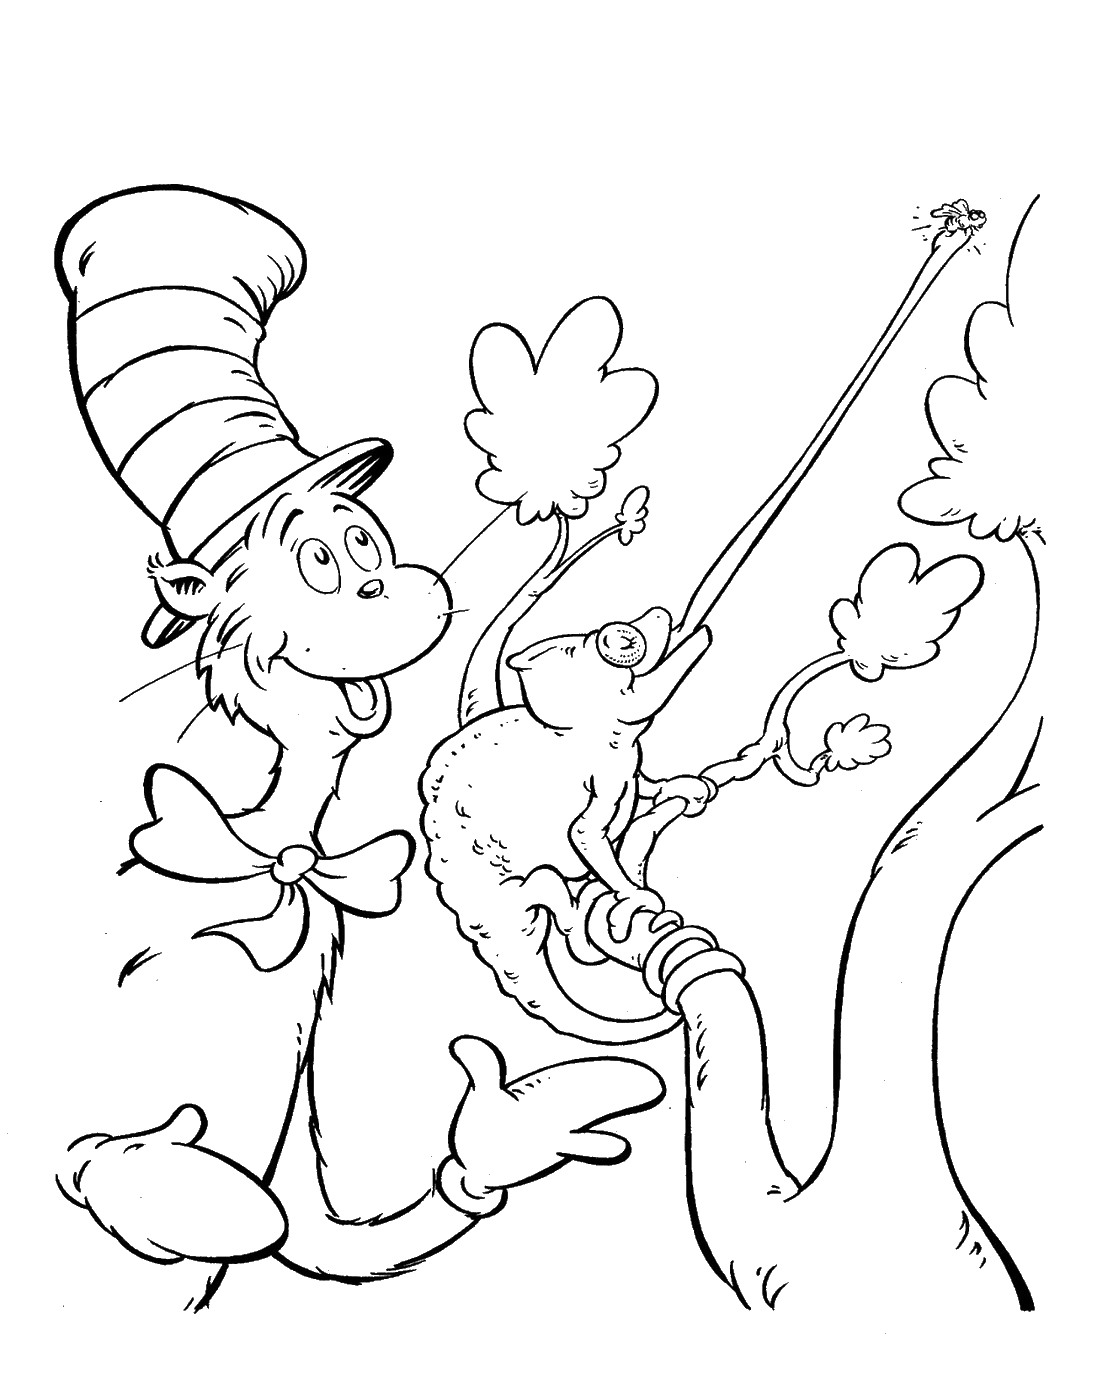 Lizard - Cat in the Hat Coloring Pages